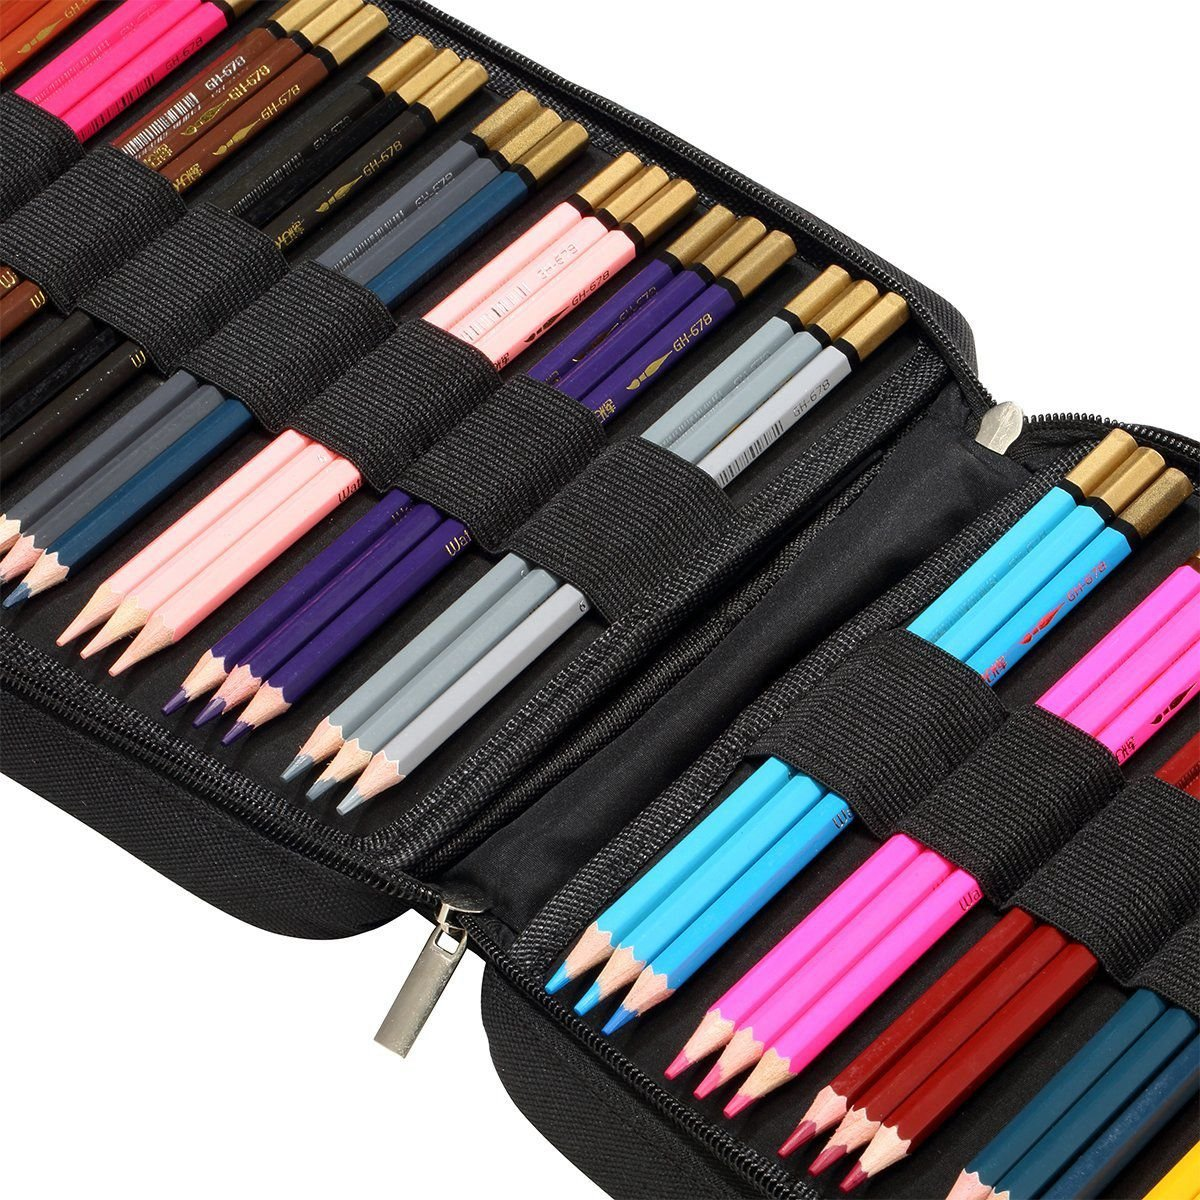 Nrpfell 150 Slots Colored Pencils Universal Pencil Bag Pen Case School Stationery PencilCase Drawing Painting Storage Pouch Pencil Box (Black) by Nrpfell (Image #5)